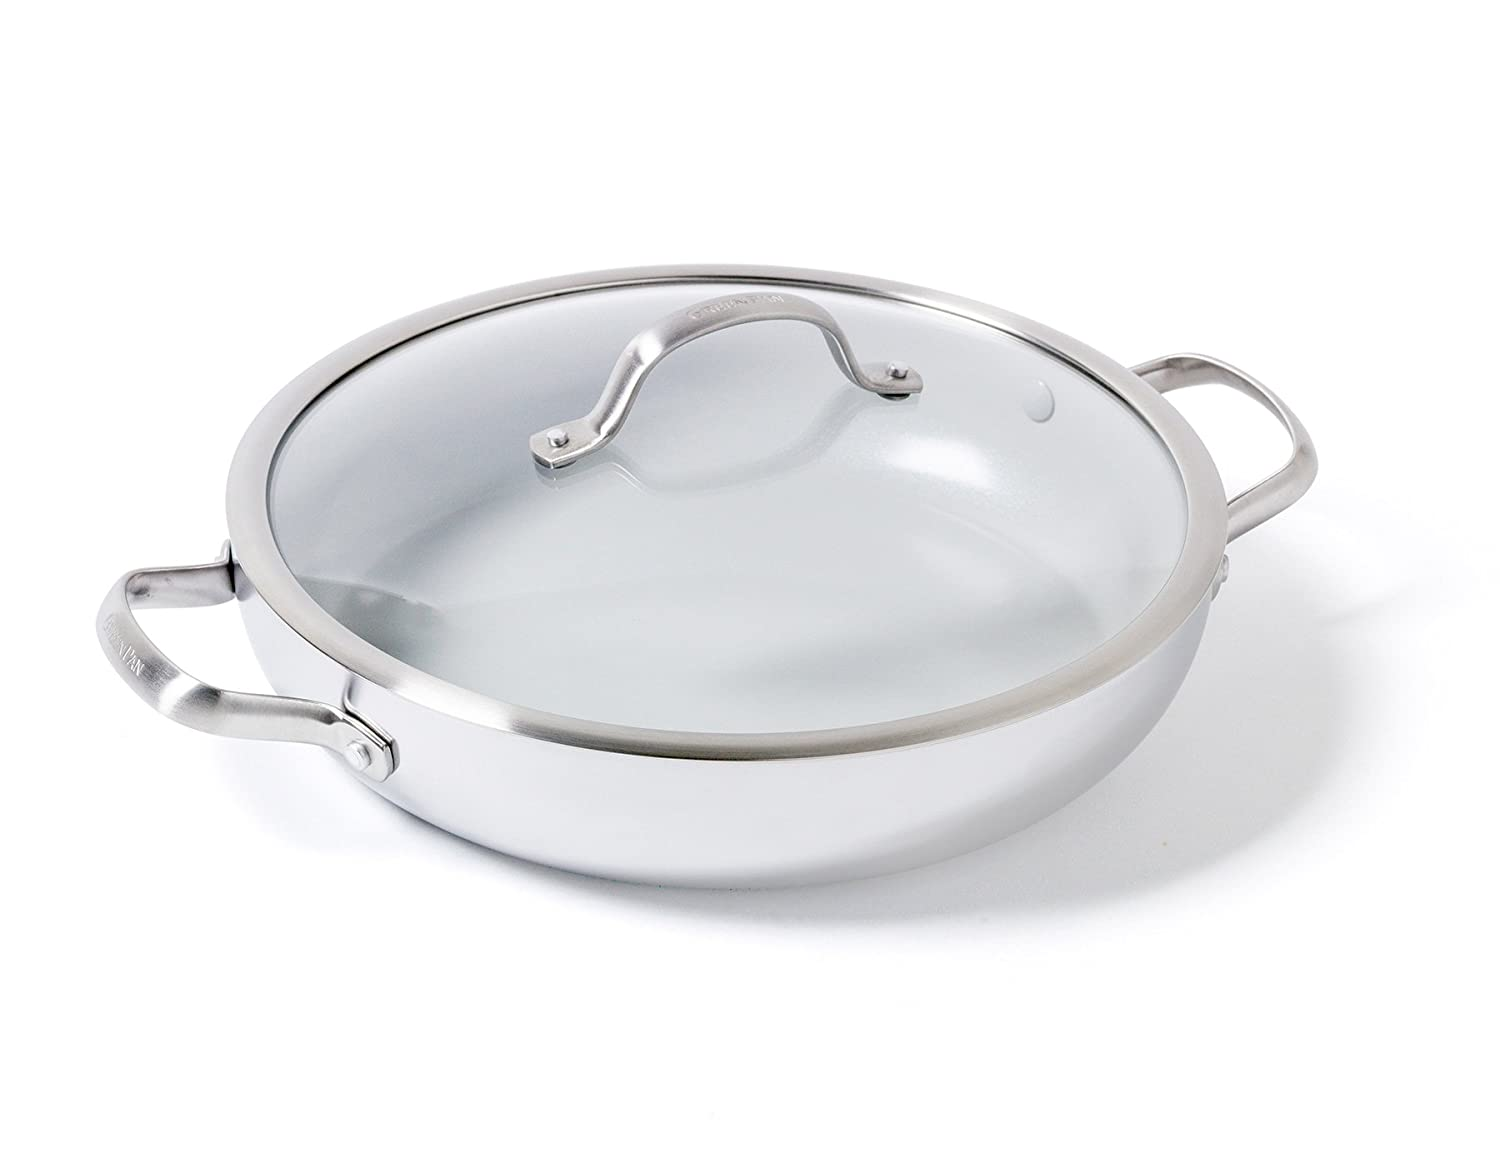 GreenPan Venice Pro 12 Ceramic Non-Stick Covered Everday Pan with 2 Side Handles CC000014-001